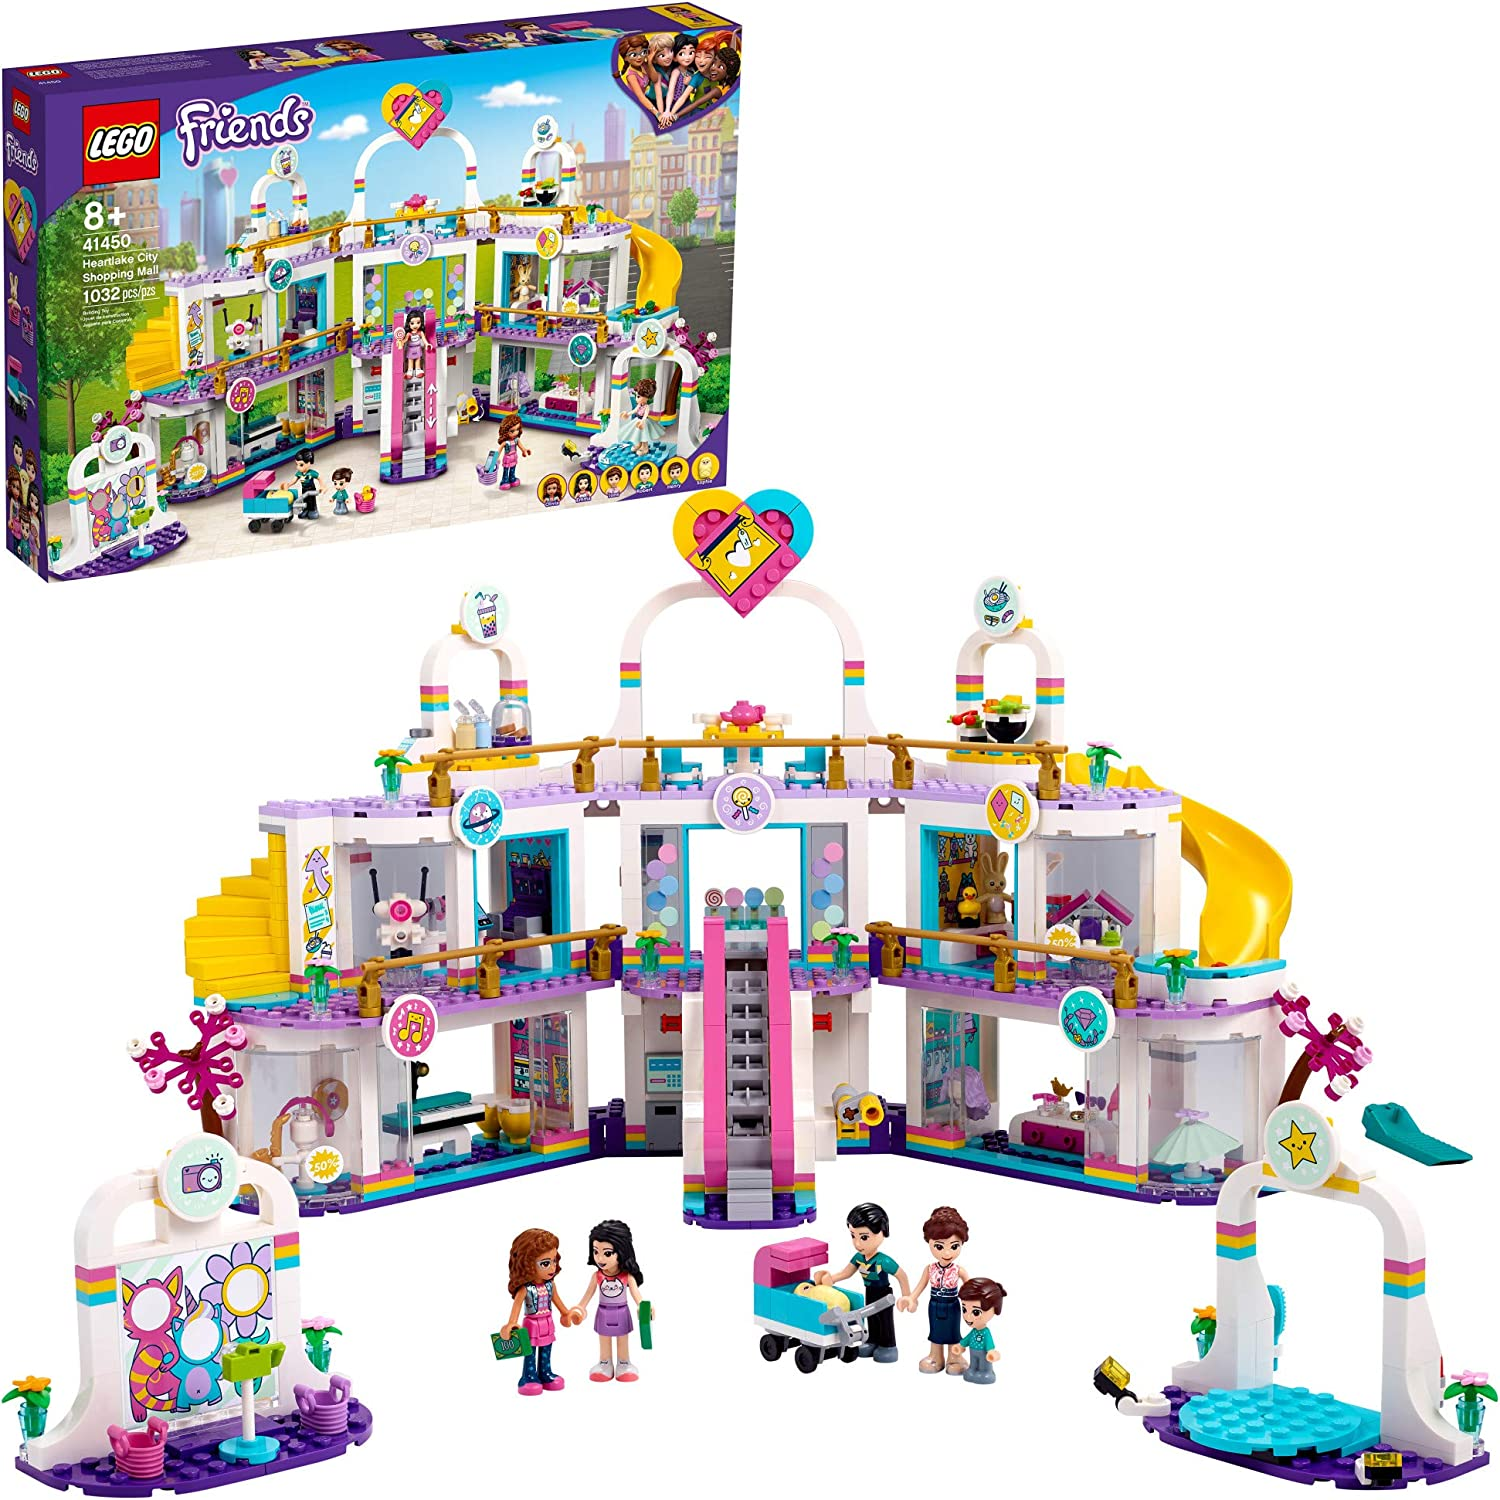 LEGO Friends Heartlake City Shopping Mall 41450 Building Kit; Includes Friends Mini-Dolls to Spark Imaginative Play; Portable Elements Make This a Great Friendship Toy, New 2021 (1,032 Pieces)